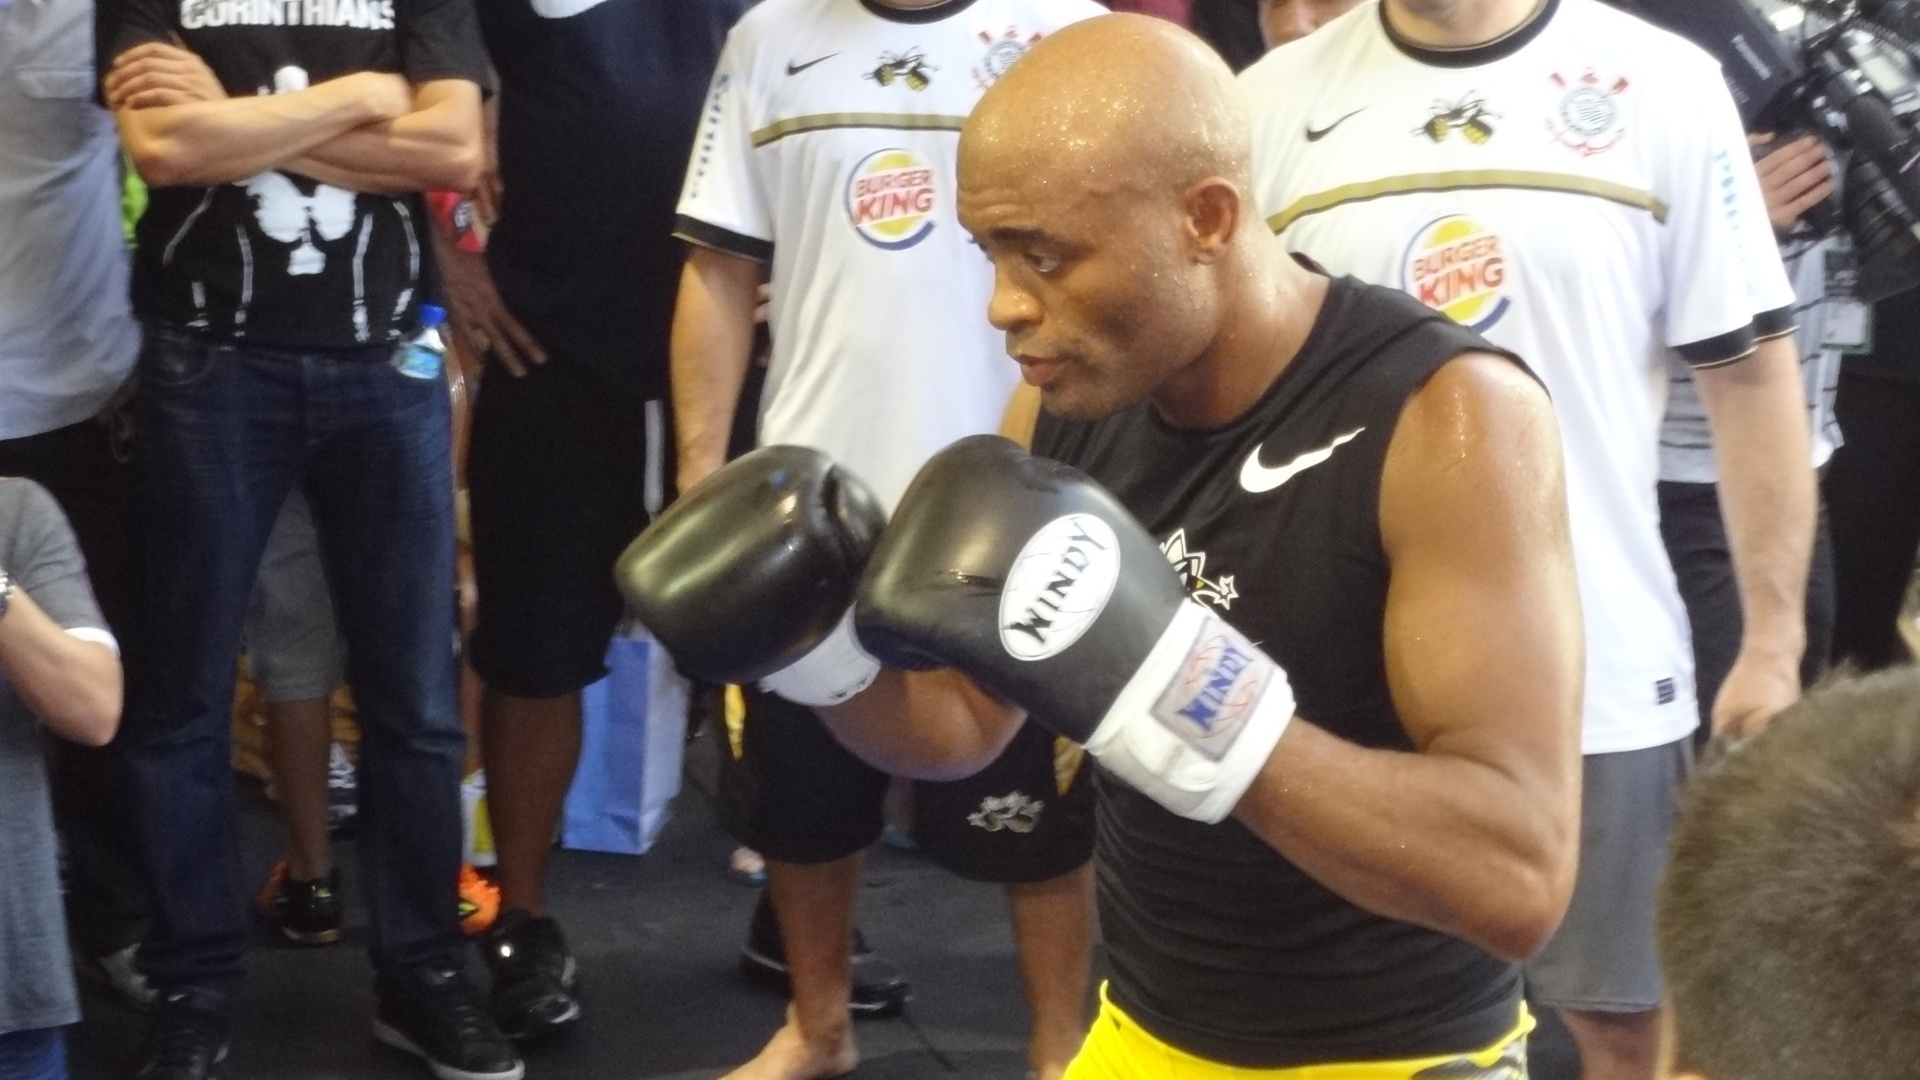 Anderson Silva arriscou alguns golpes de trocao durante treino aberto do UFC 148